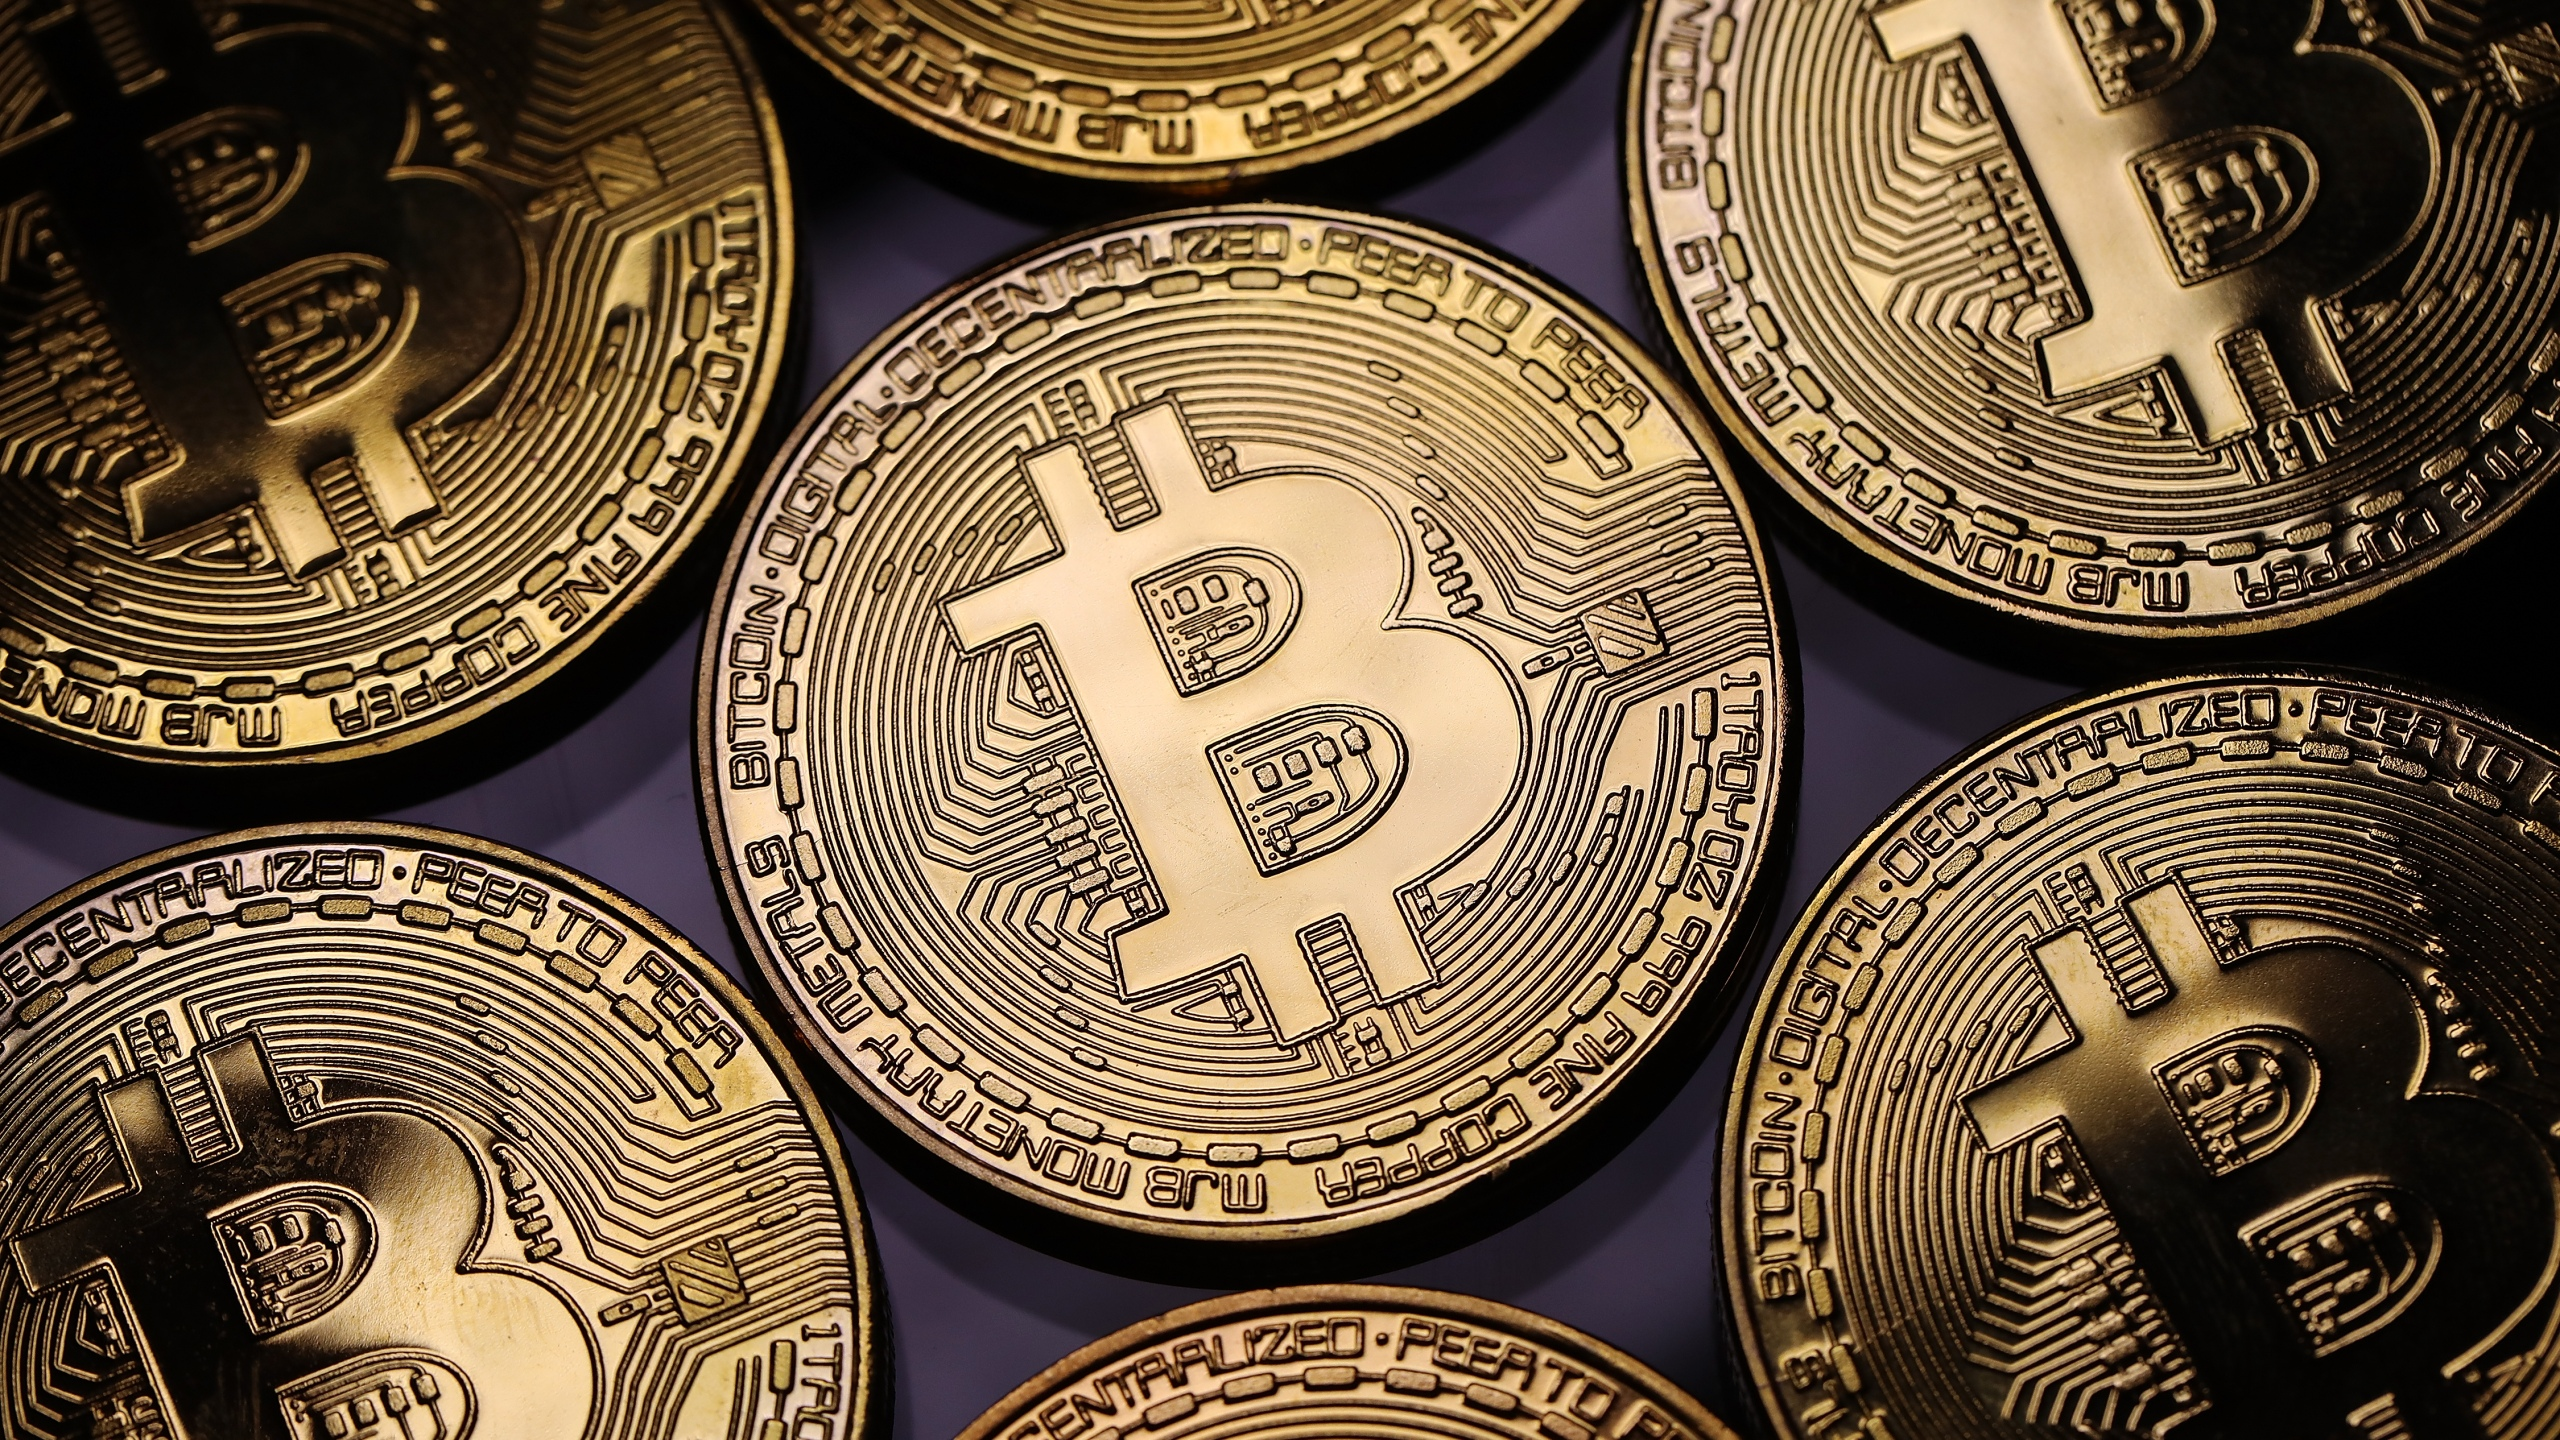 A visual representation of the digital Cryptocurrency, Bitcoin on December 07, 2017 in London, England. (Credit: Dan Kitwood/Getty Images)